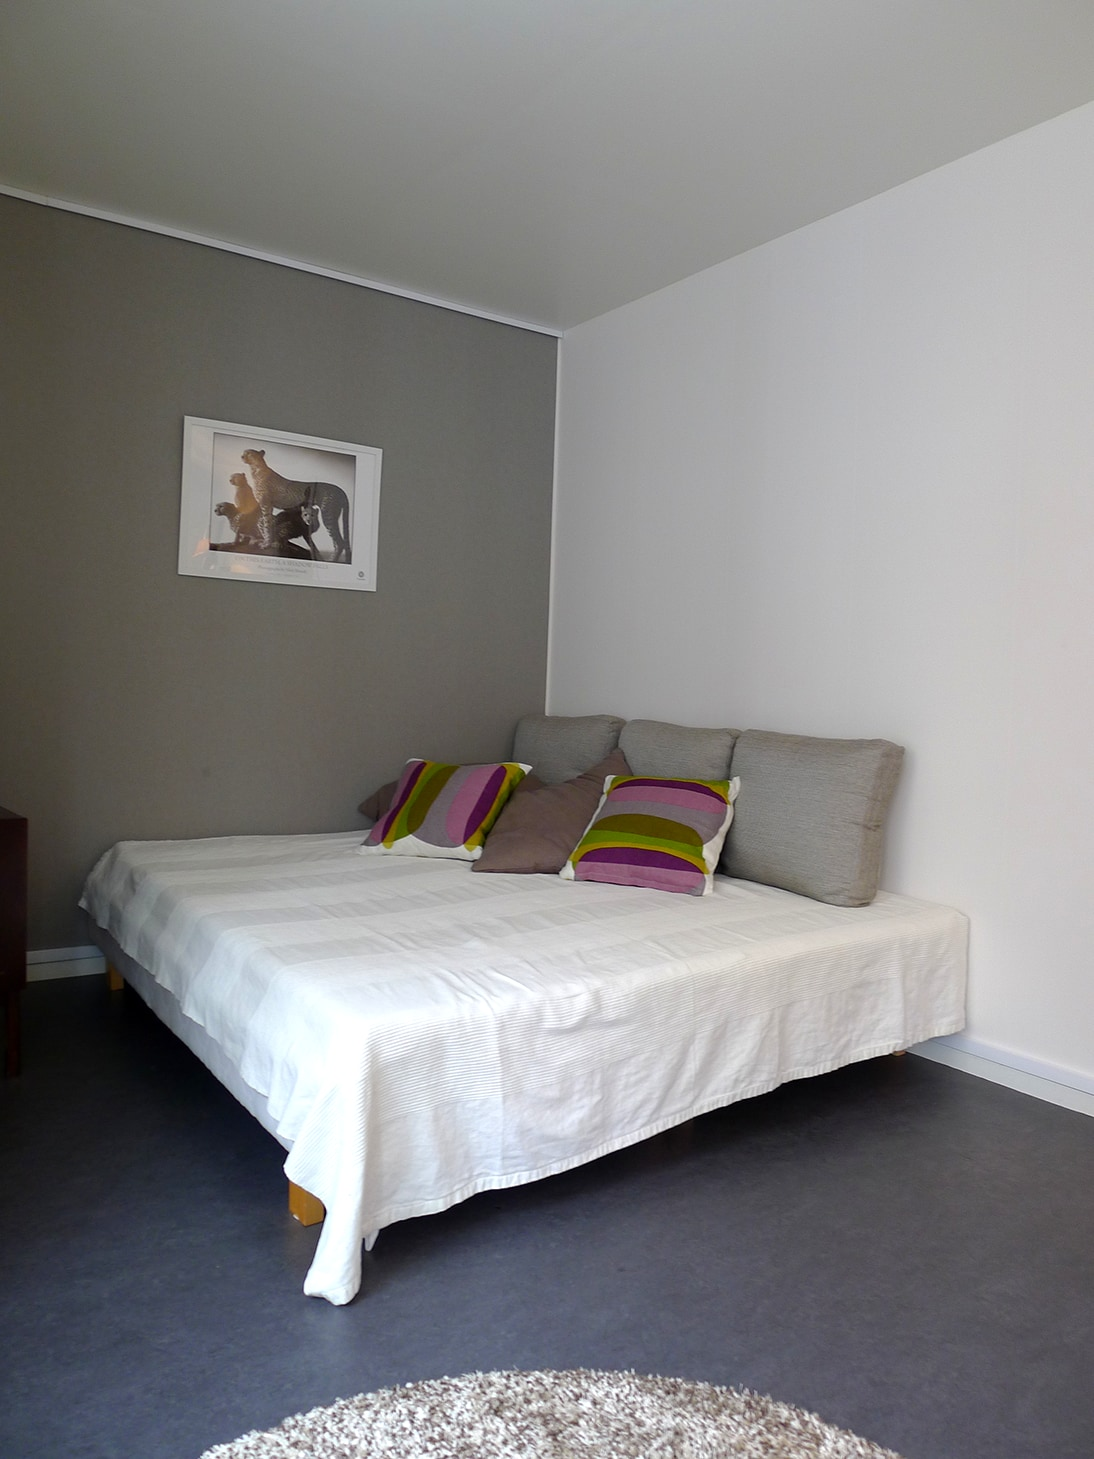 King size bed. Bed linen are included